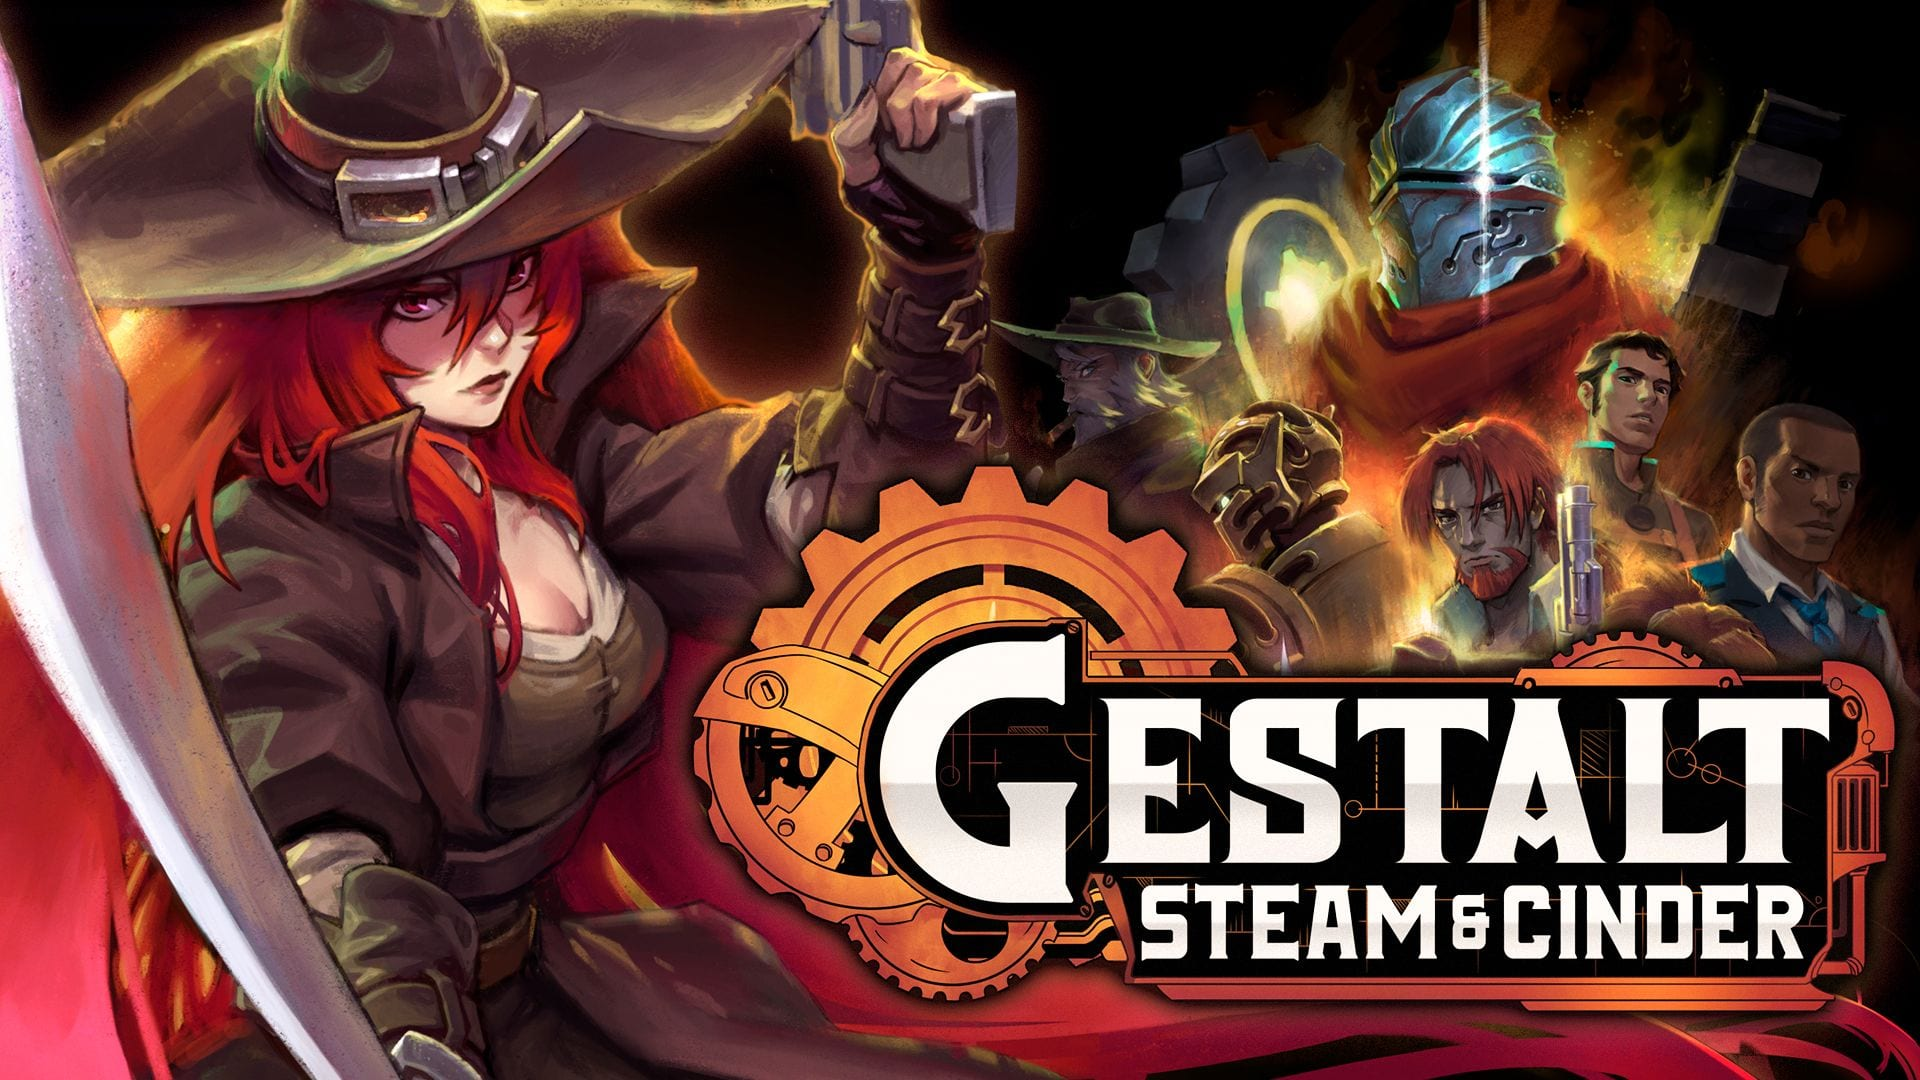 Gestalt: Steam and Cinder